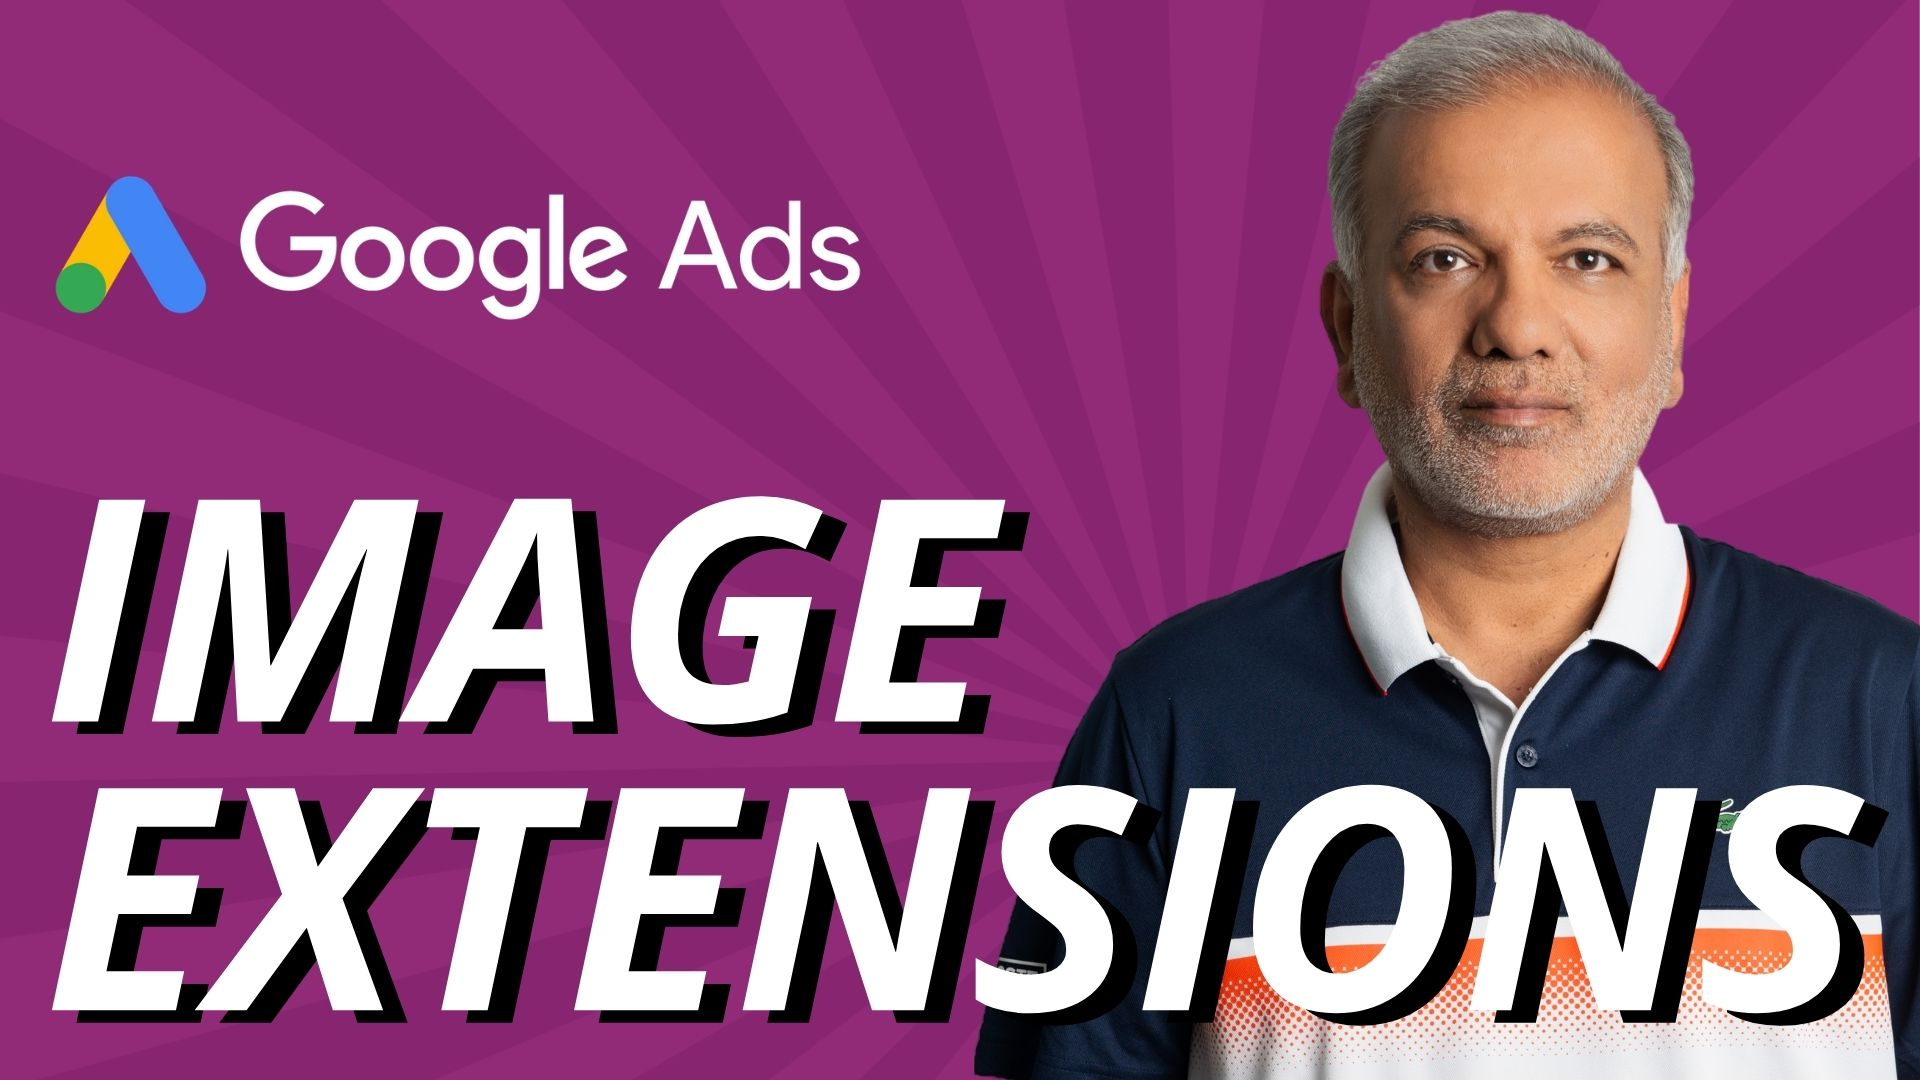 Google Ads Image Extensions: Everything You Need To Know